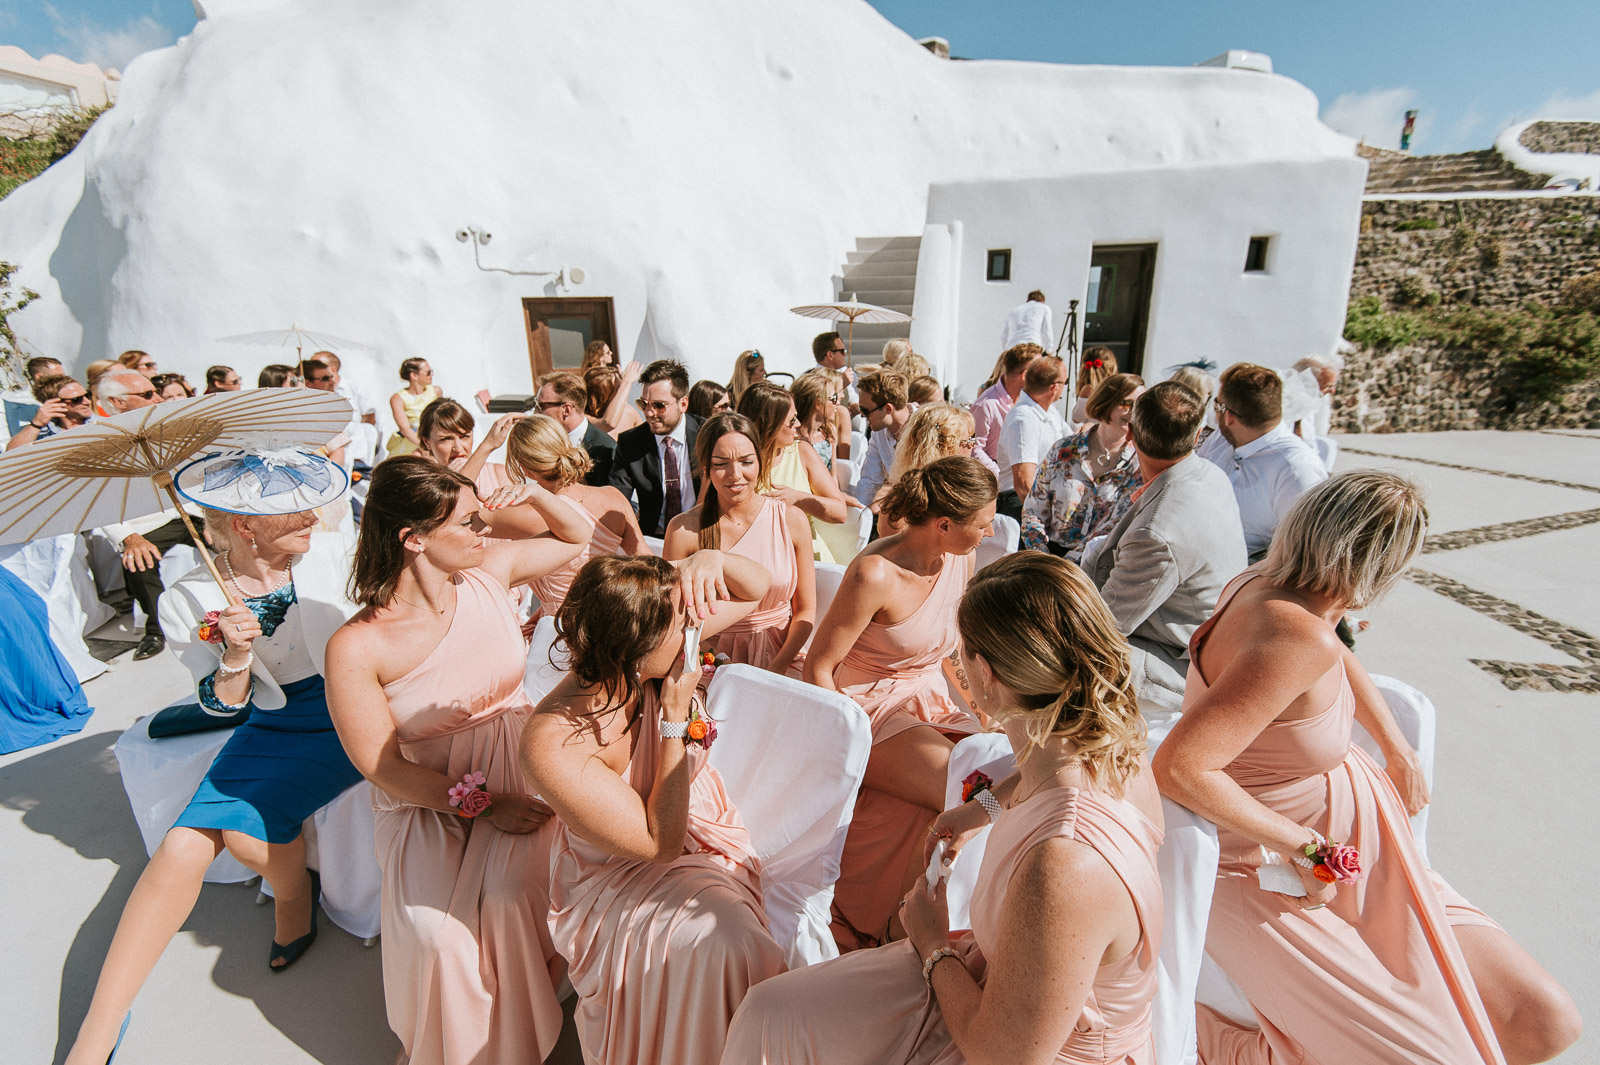 Santorini-Wedding-Photographer-Greece-Destination-Weddings-Mait-Juriado-M&J-Studios-056